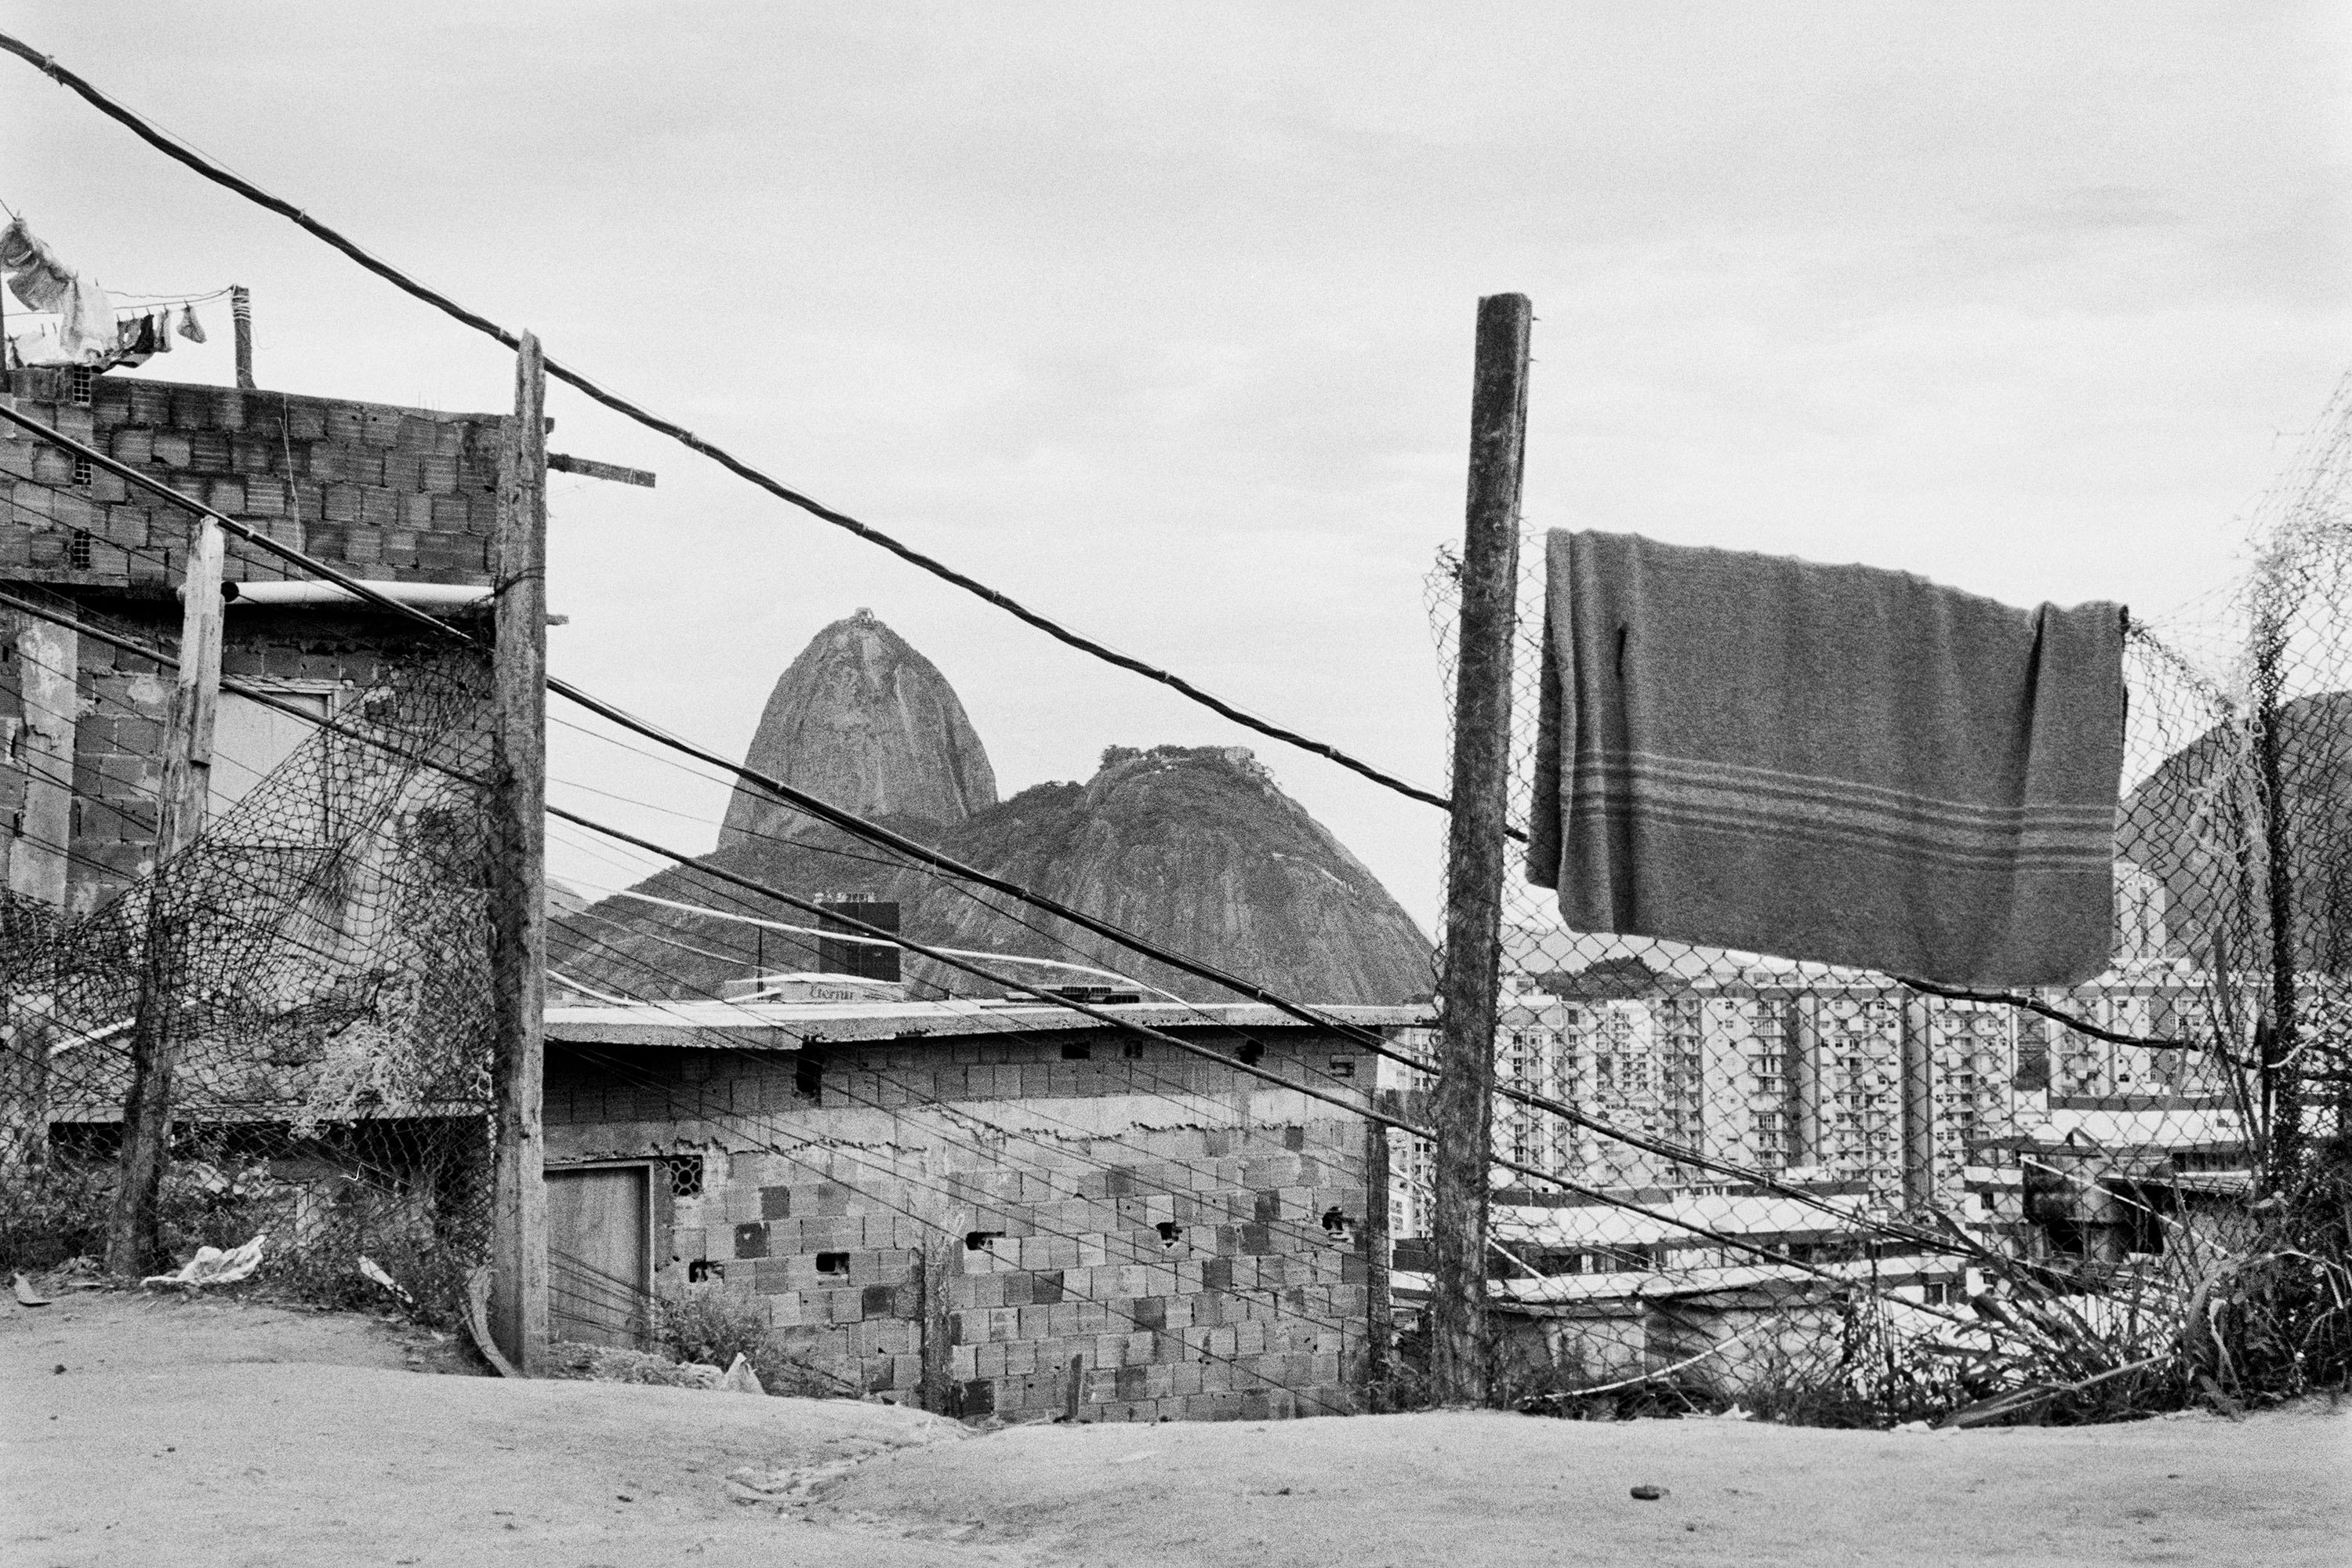 048 - Favelas do Rio by Andre Cypriano.jpg